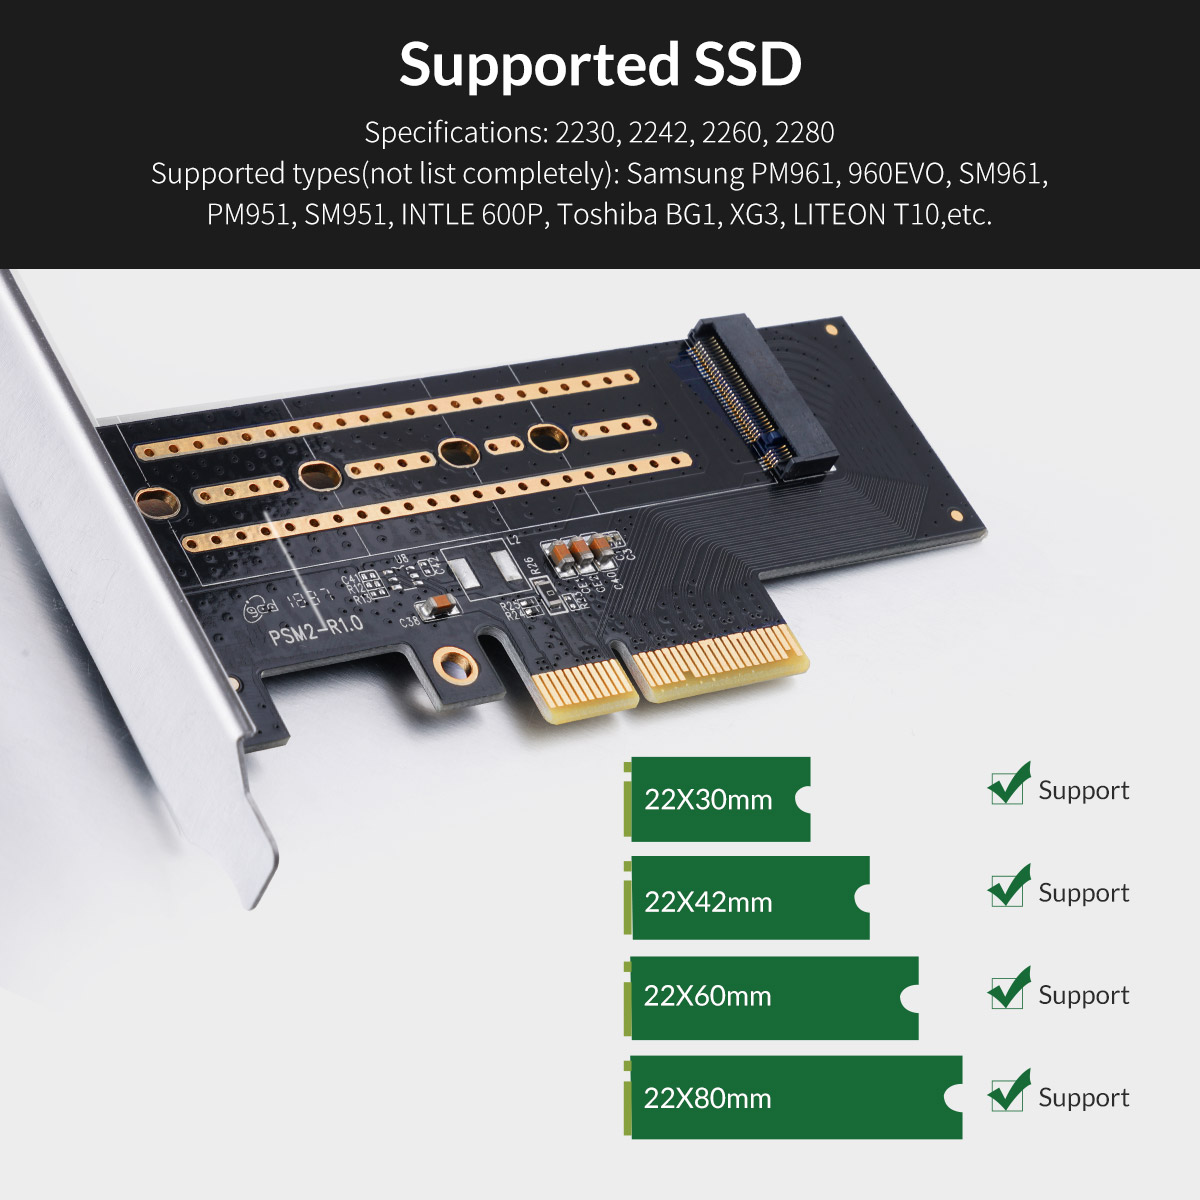 Supported SSD